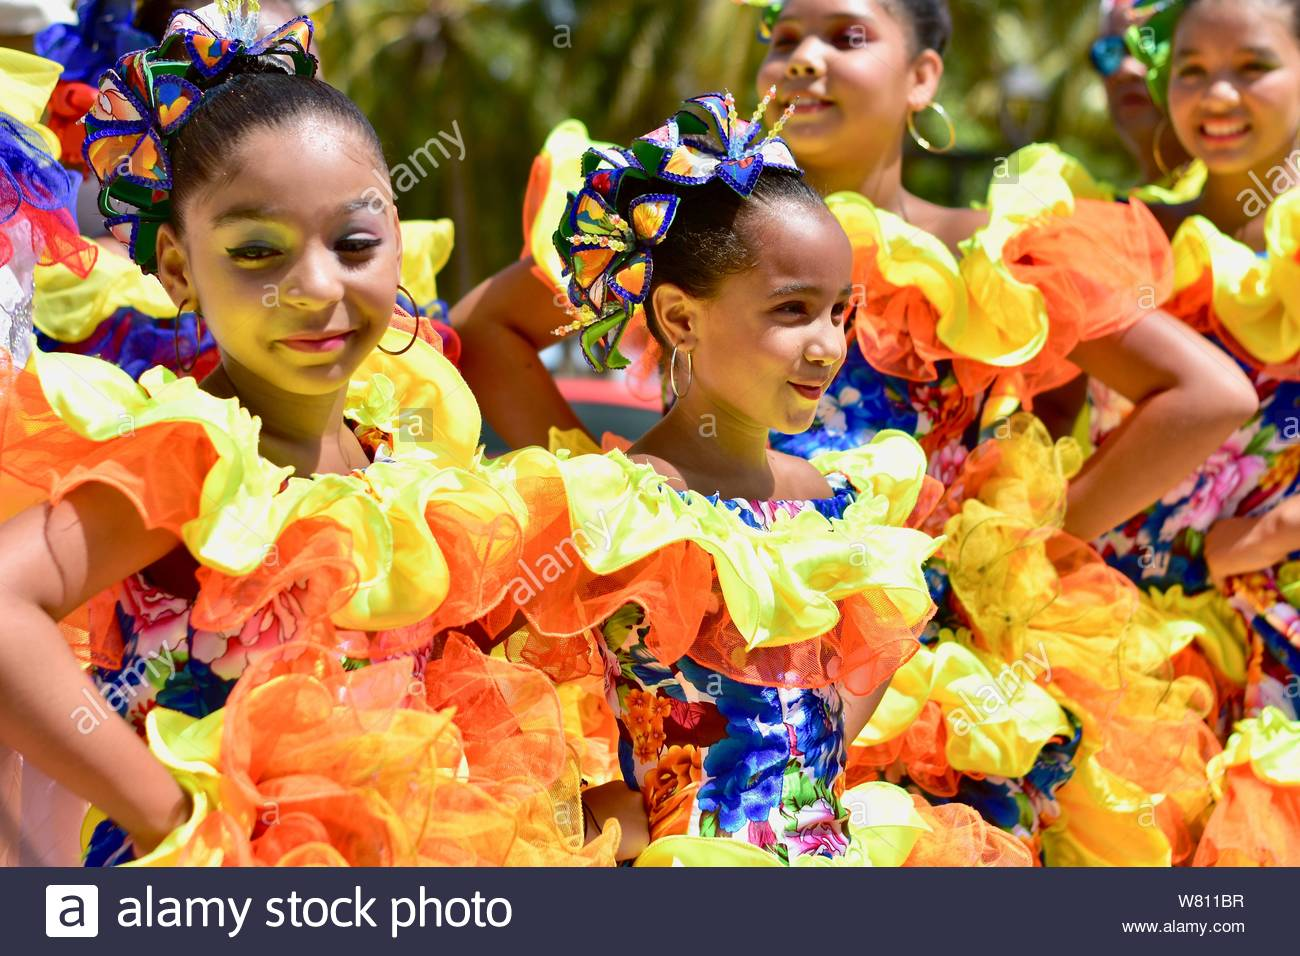 Young ballerinas in the Colombia's independence day. Stock Photo